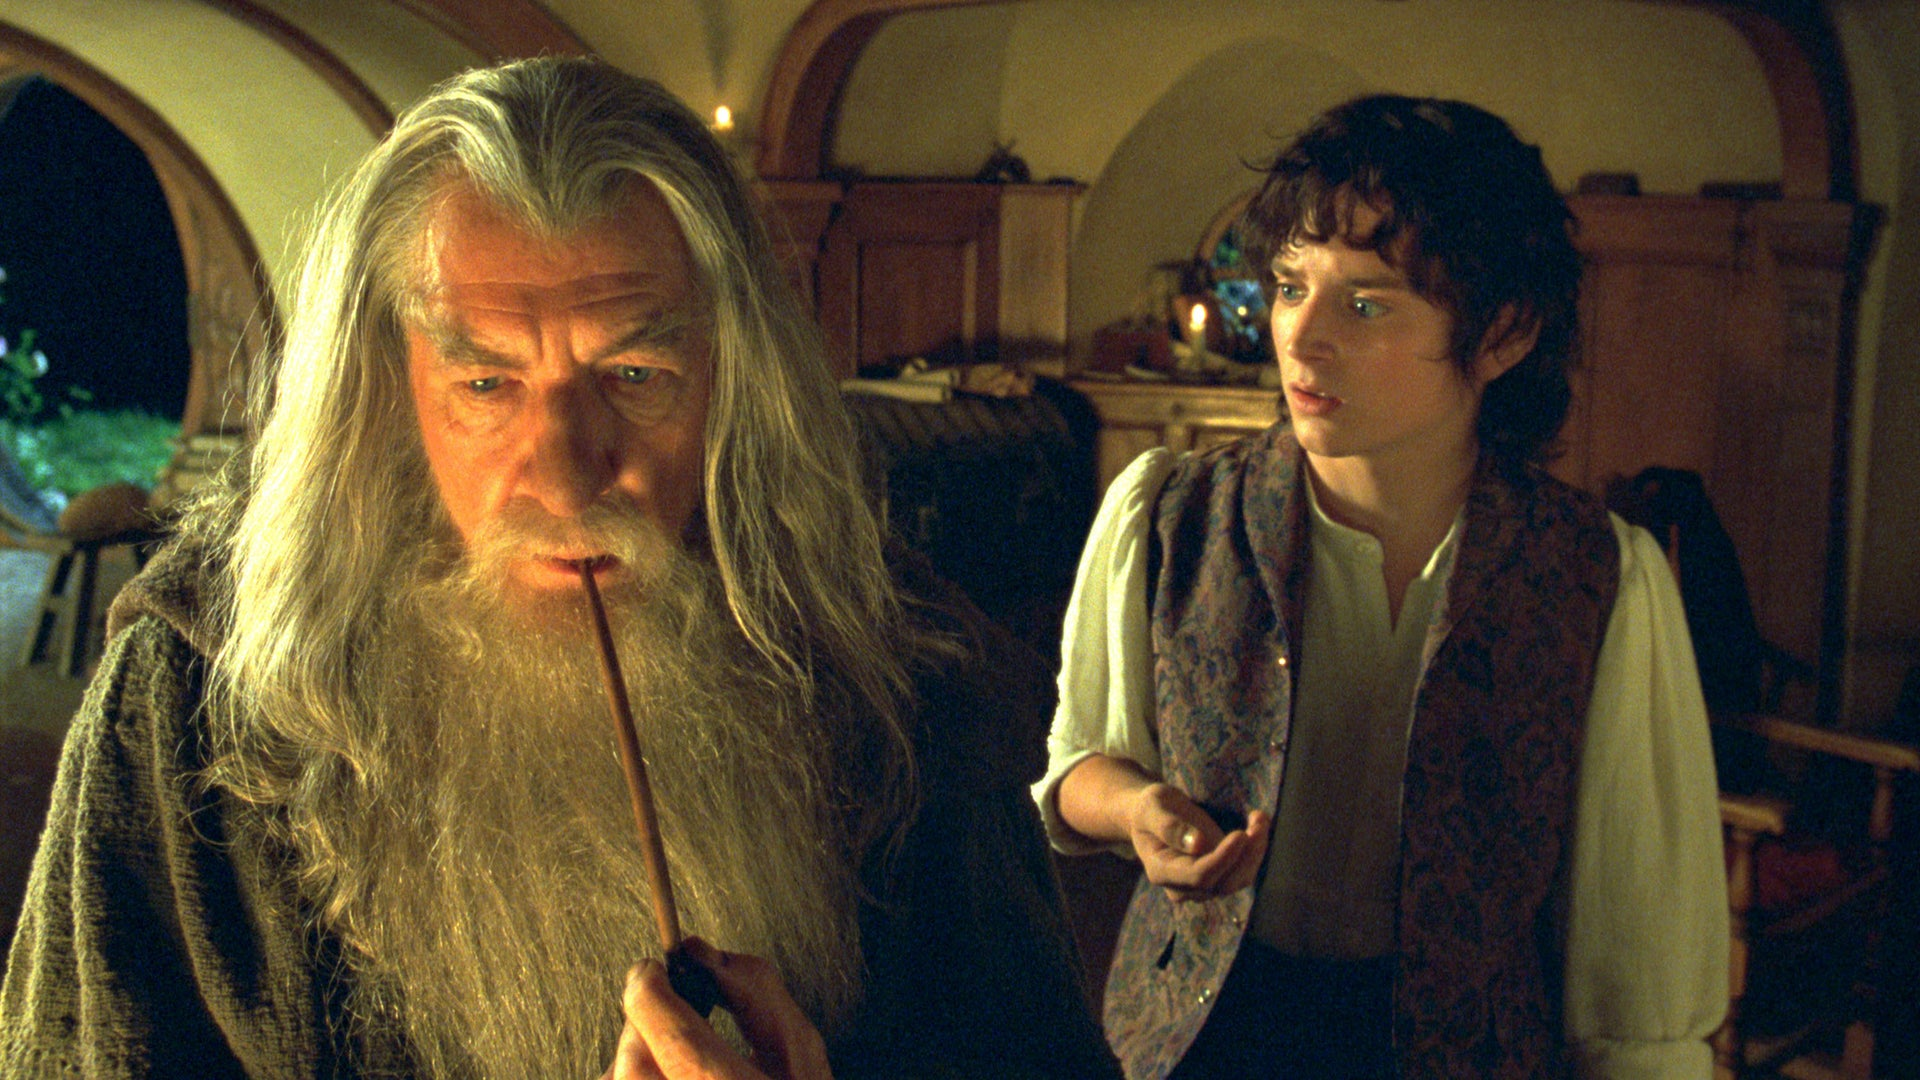 Ian McKellen and Elijah Wood, The Lord of the Rings: The Fellowship of the Ring